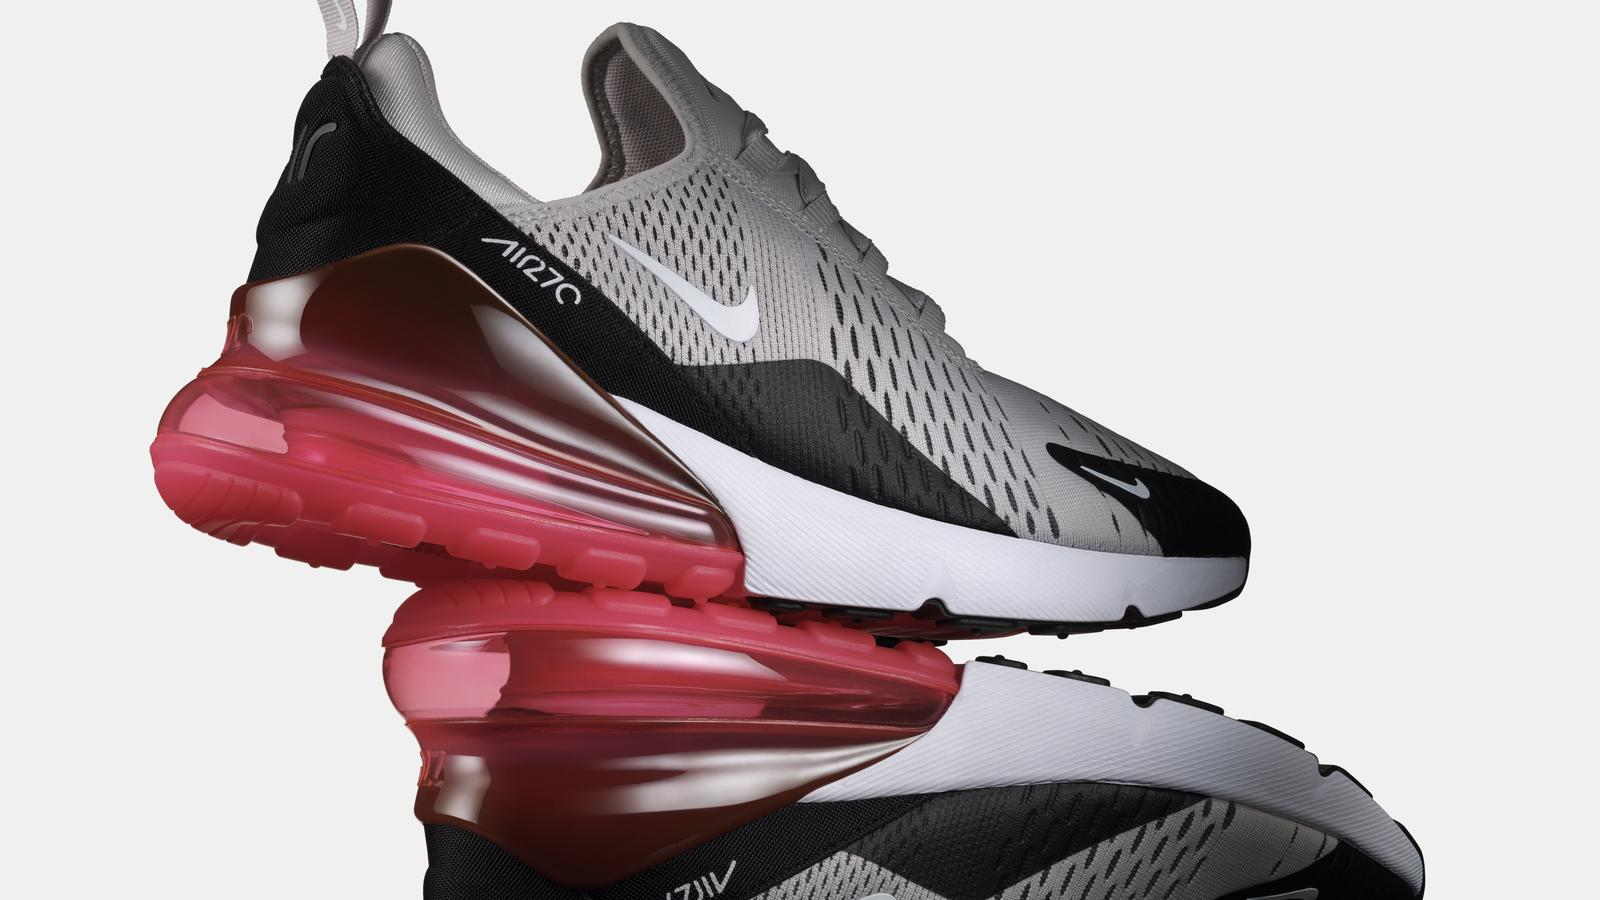 promo code 550e5 32059 Nike's Air Max 270, VaporMax, and Epic React are boosting ...